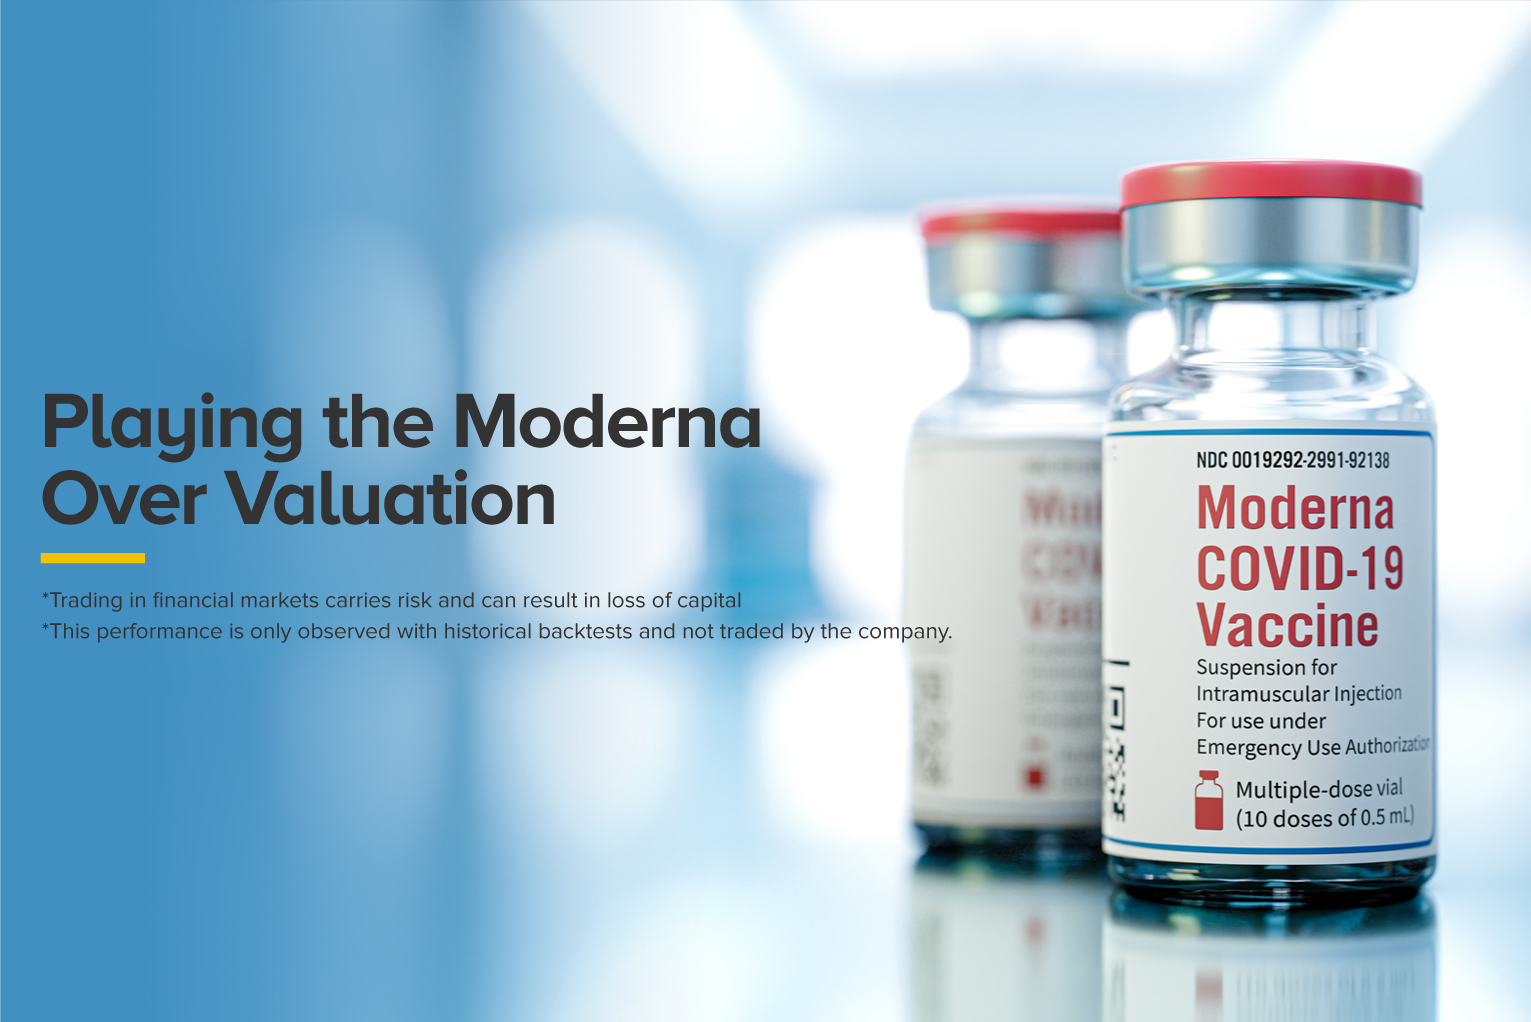 Playing the Moderna Over Valuation